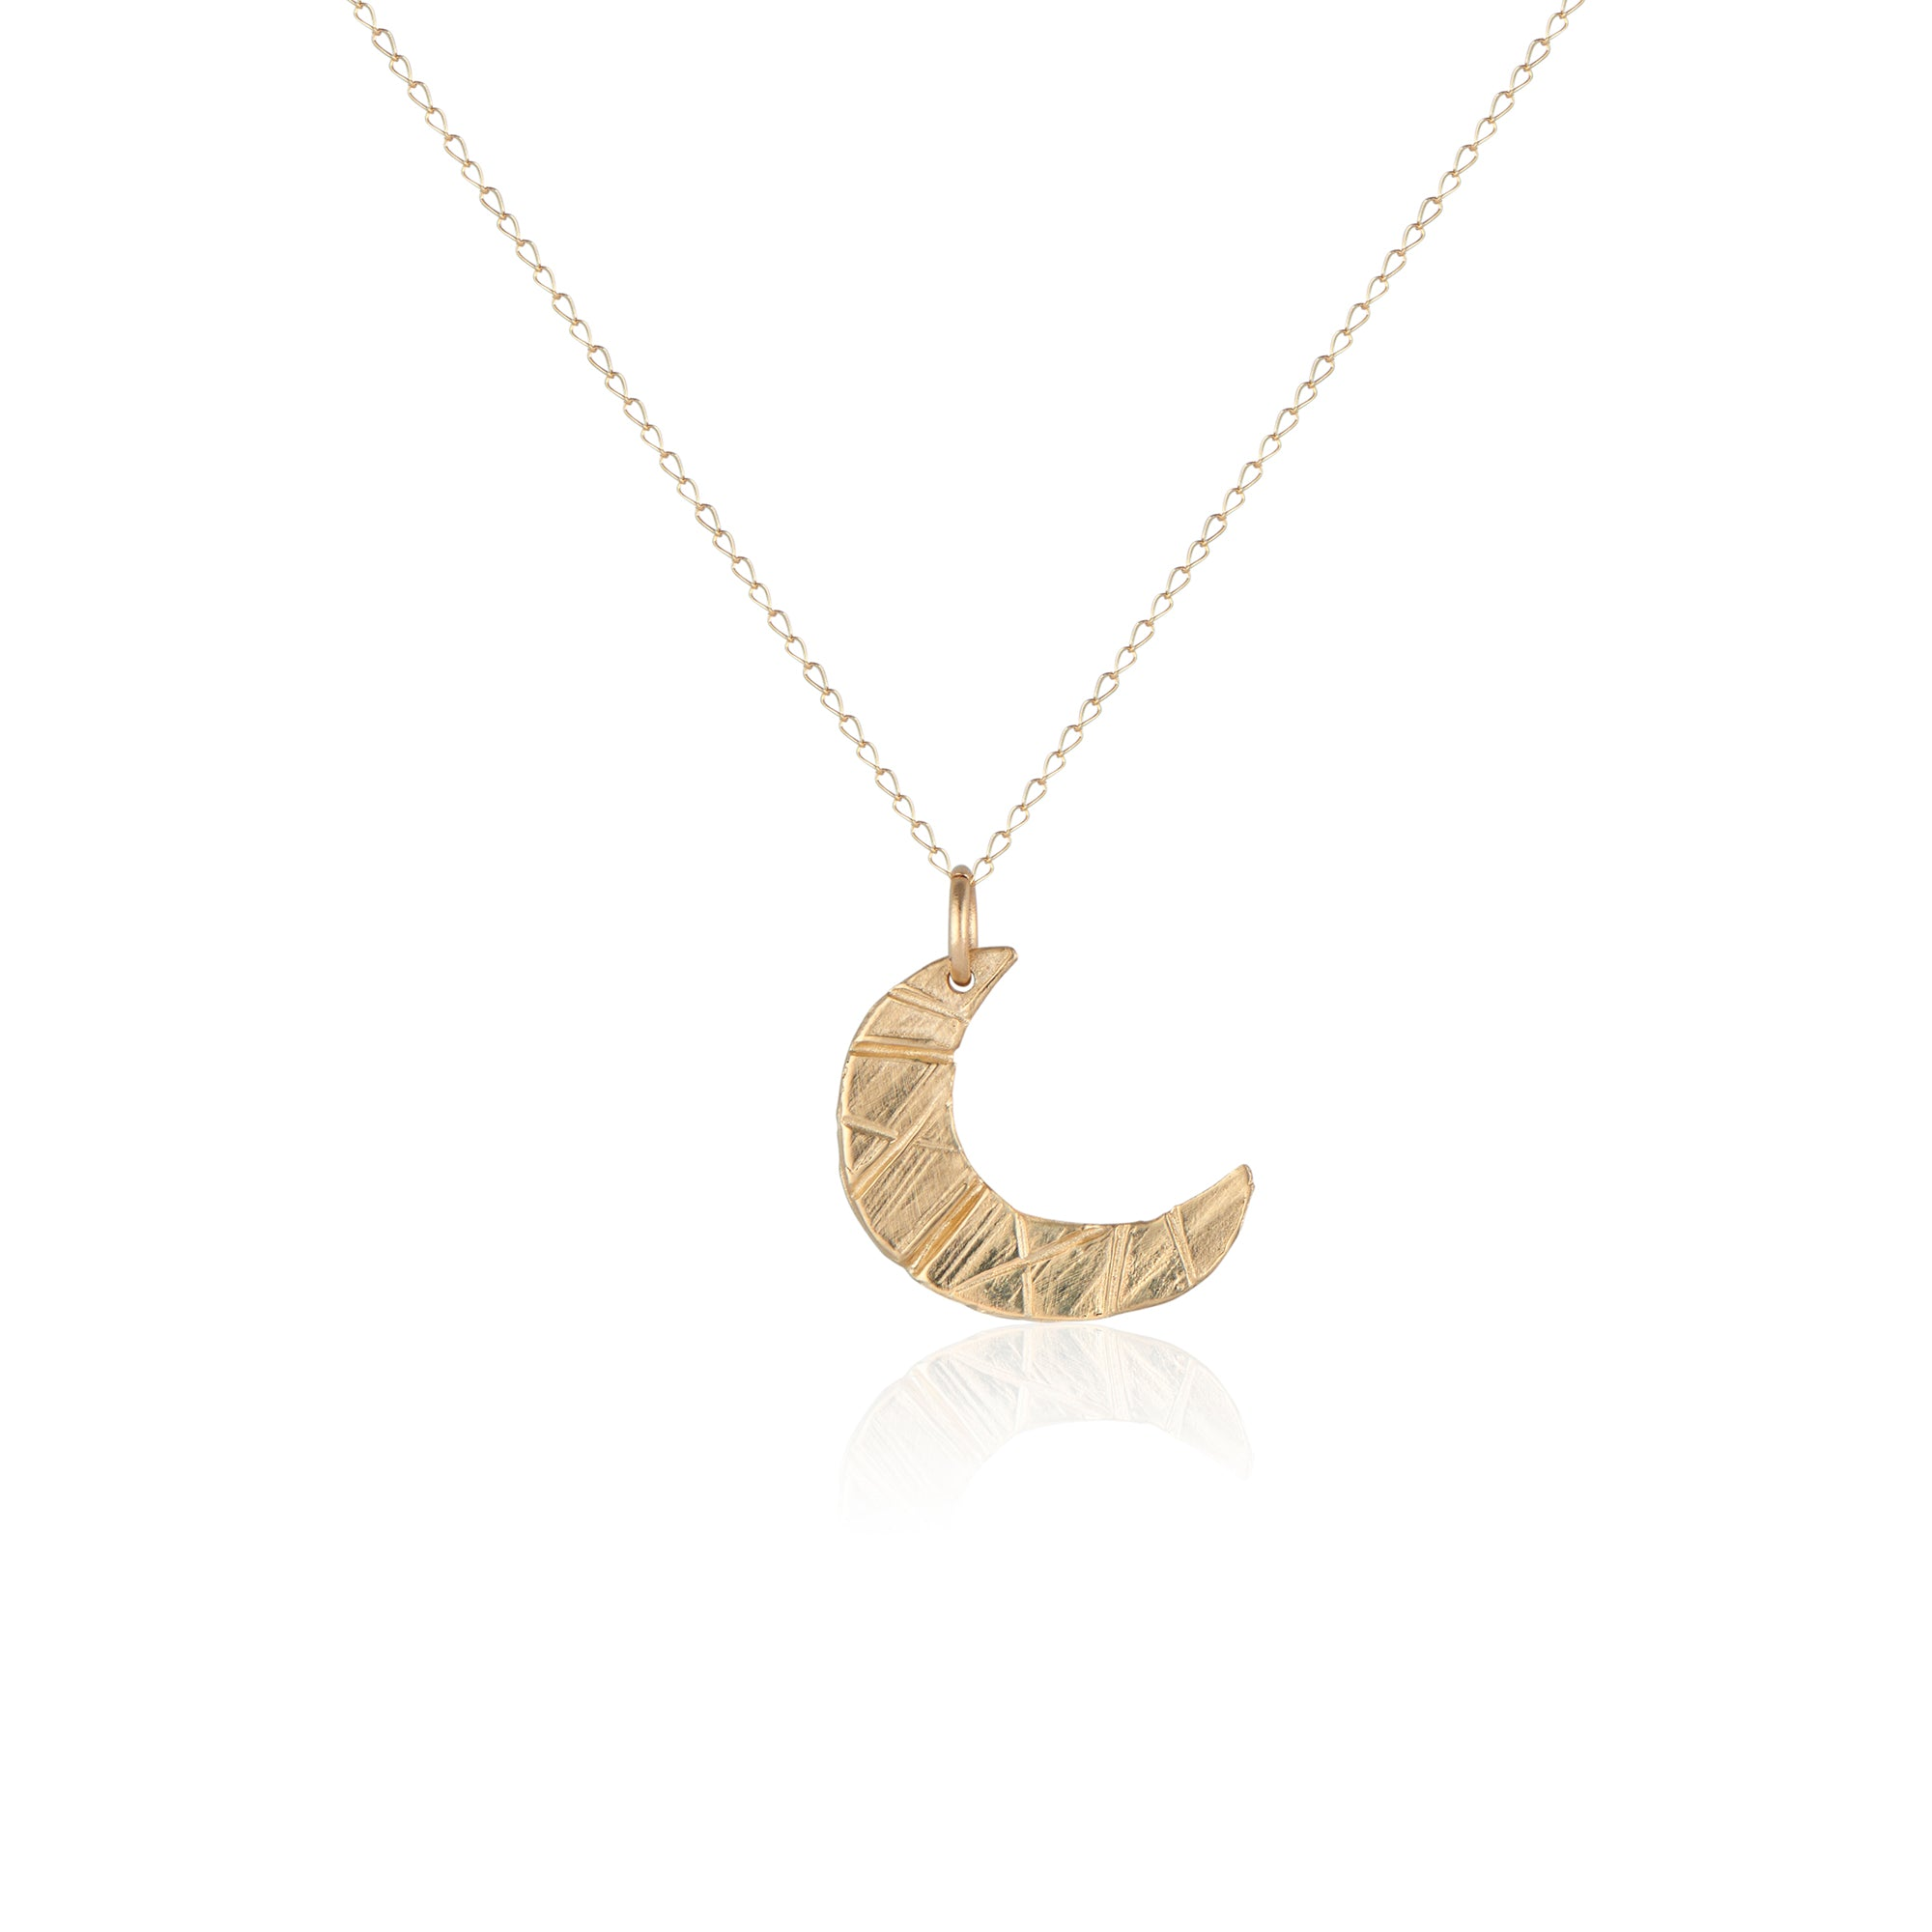 The Natalie McMillan moon shaped 14k gold pendant delicately hangs on a fine 14k gold chain. Perfect for layering or wearing on its own for a dainty, every day look.